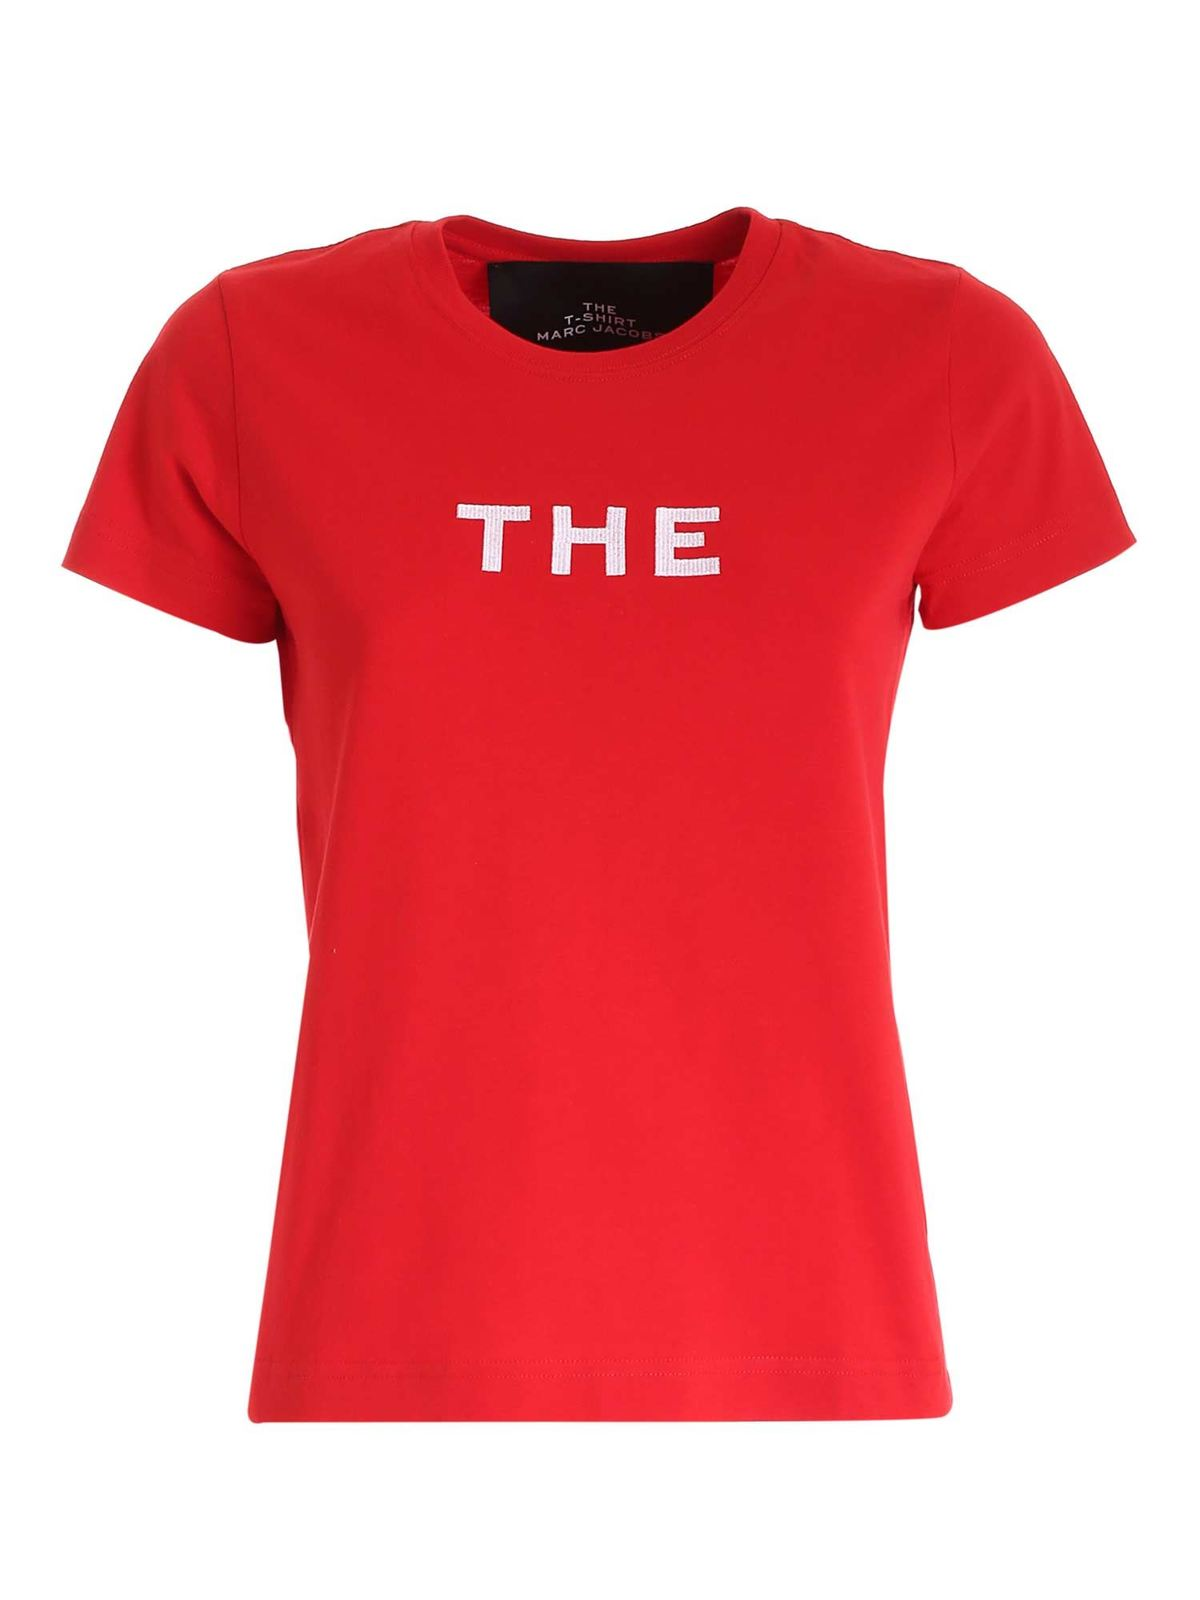 Marc Jacobs EMBROIDERY T-SHIRT IN RED